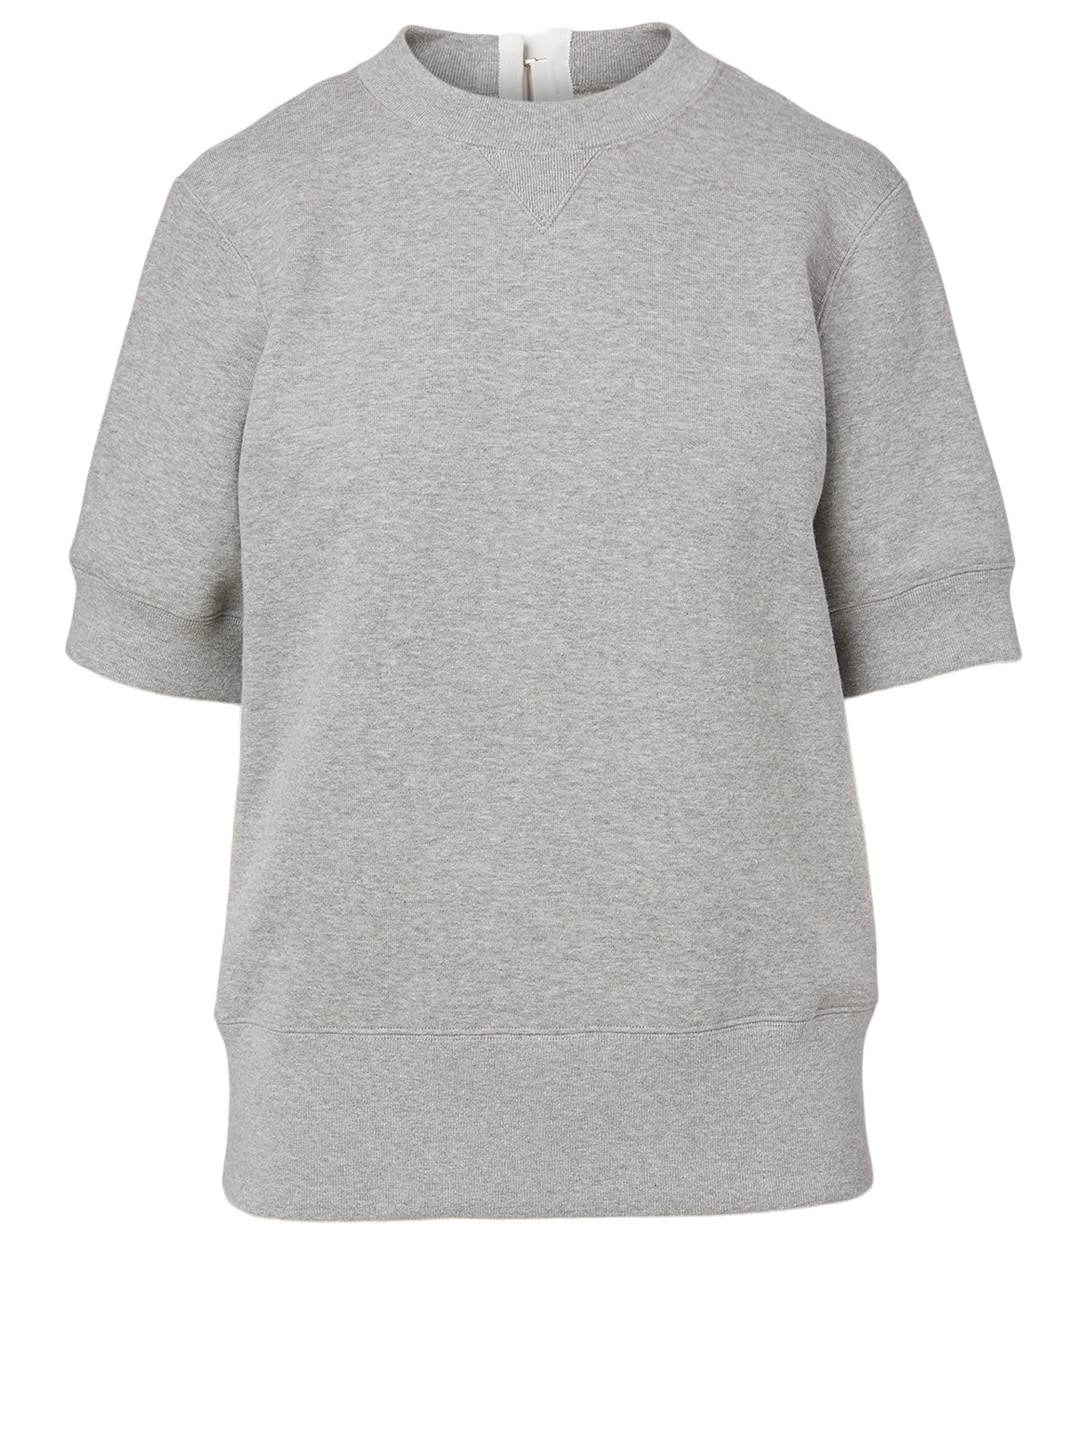 SACAI Short-Sleeve Sweatshirt Women's Grey